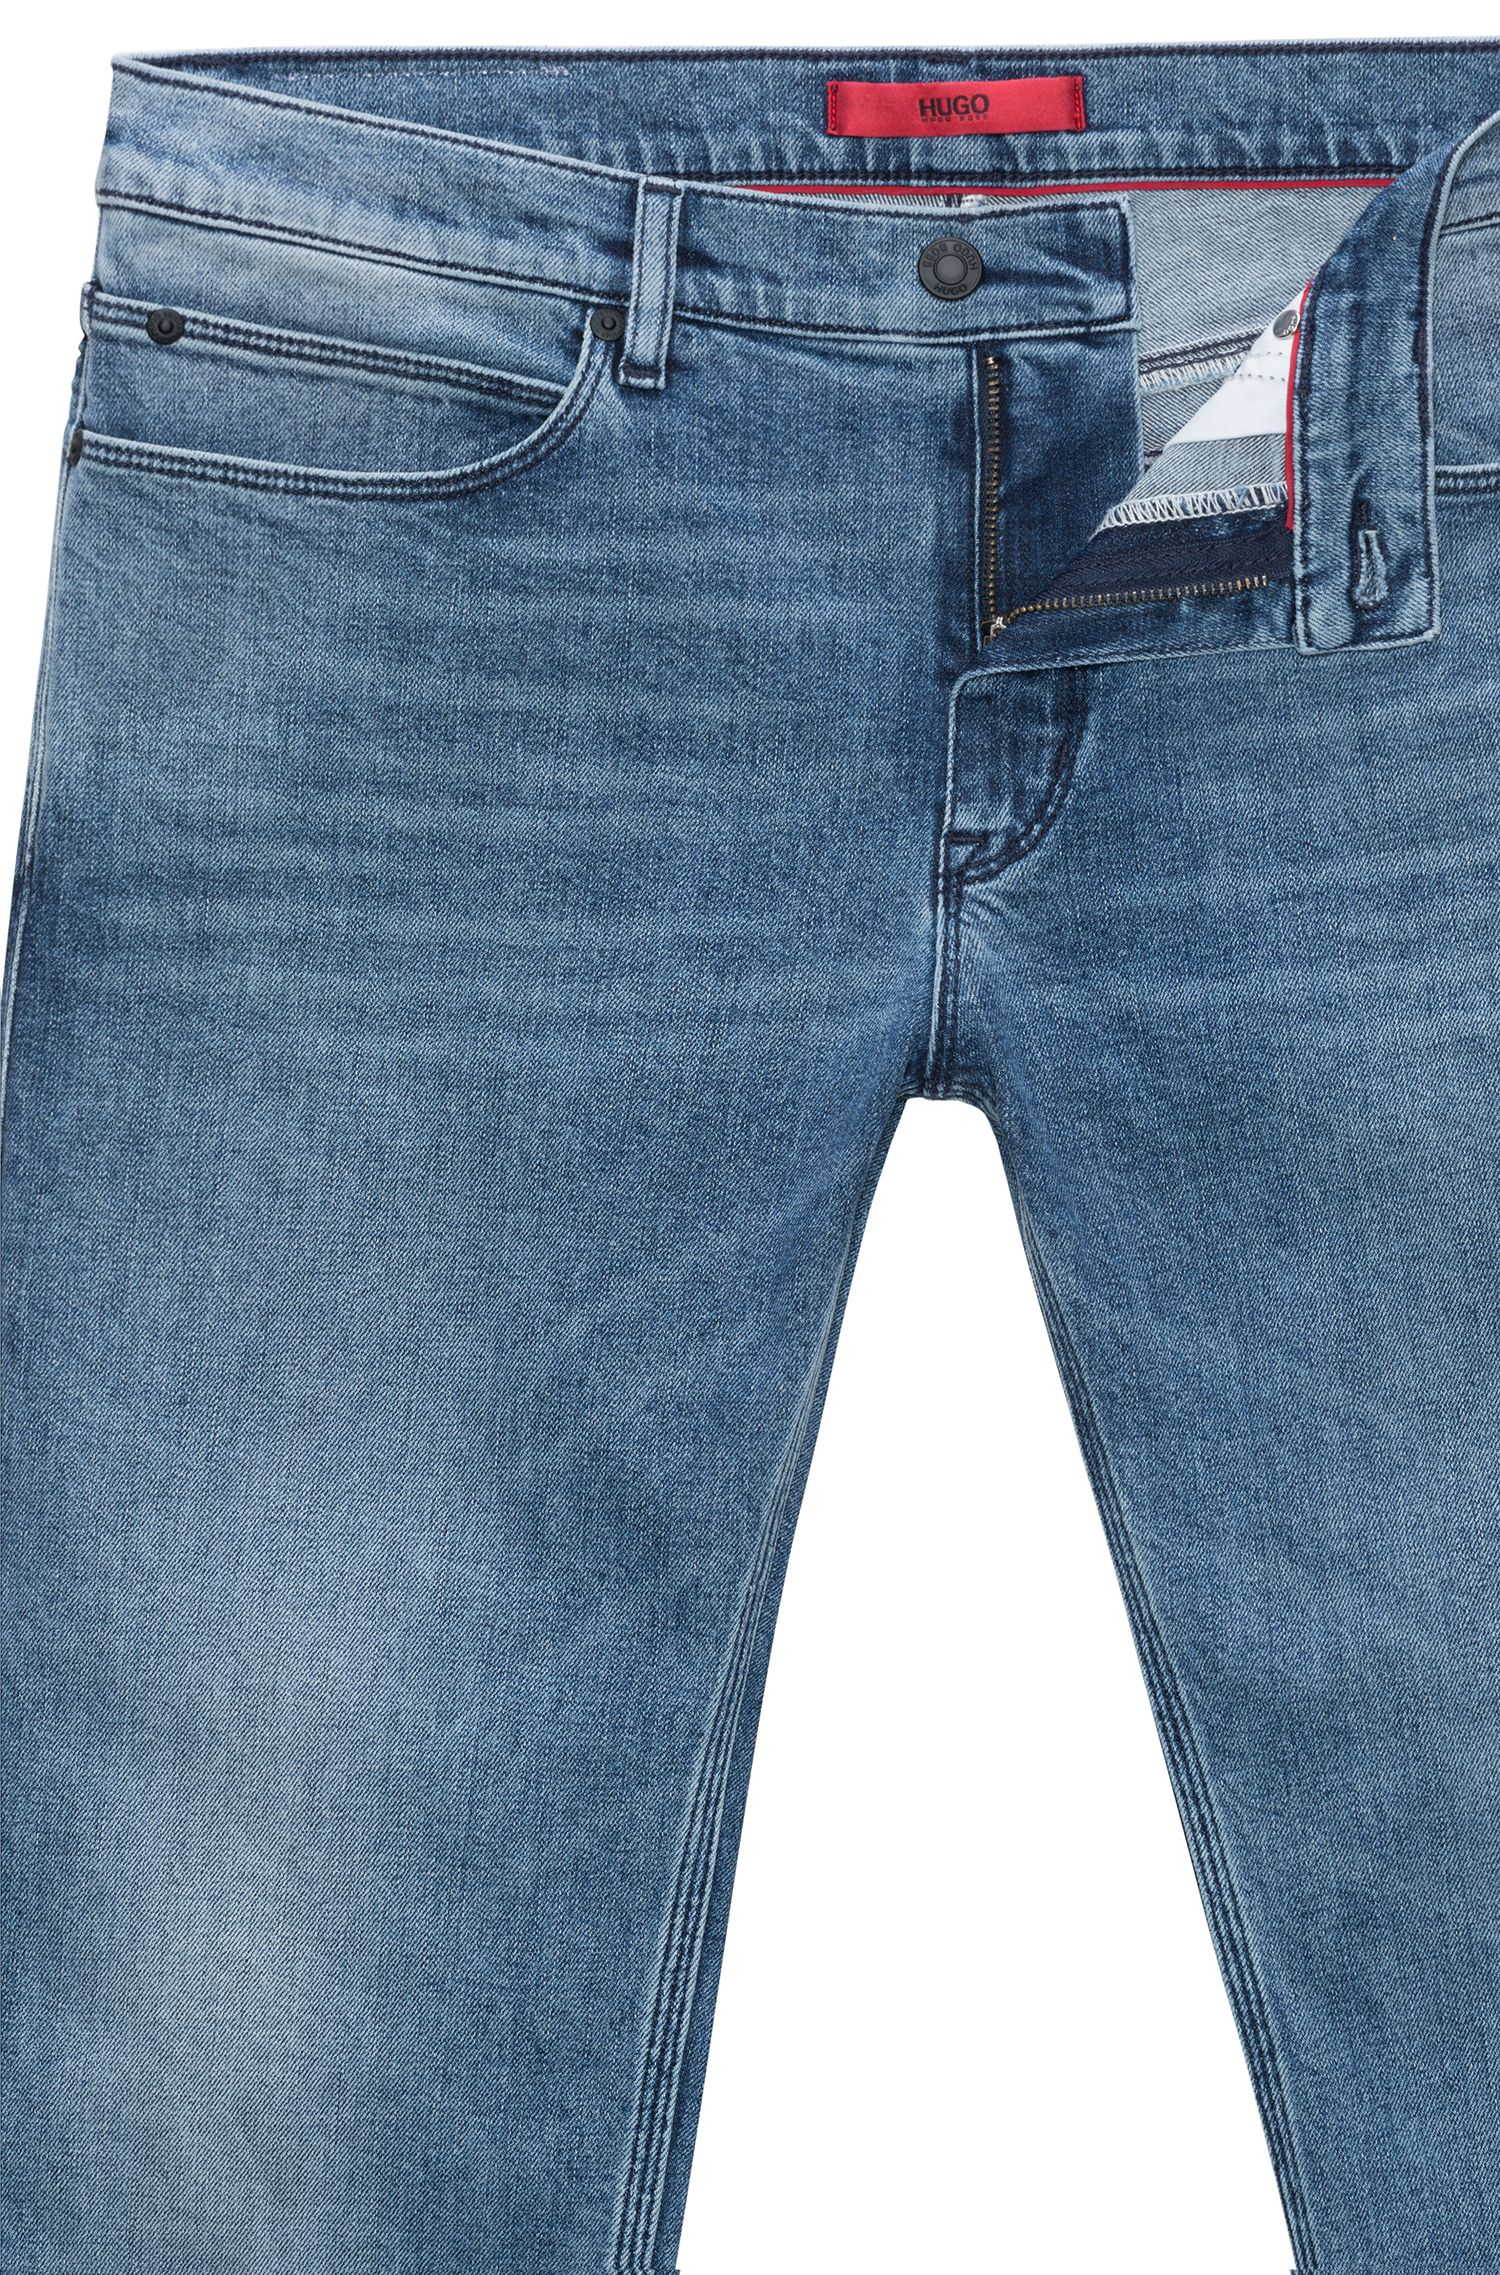 Hugo Boss - Slim-fit jeans in mid-blue stretch denim - 5